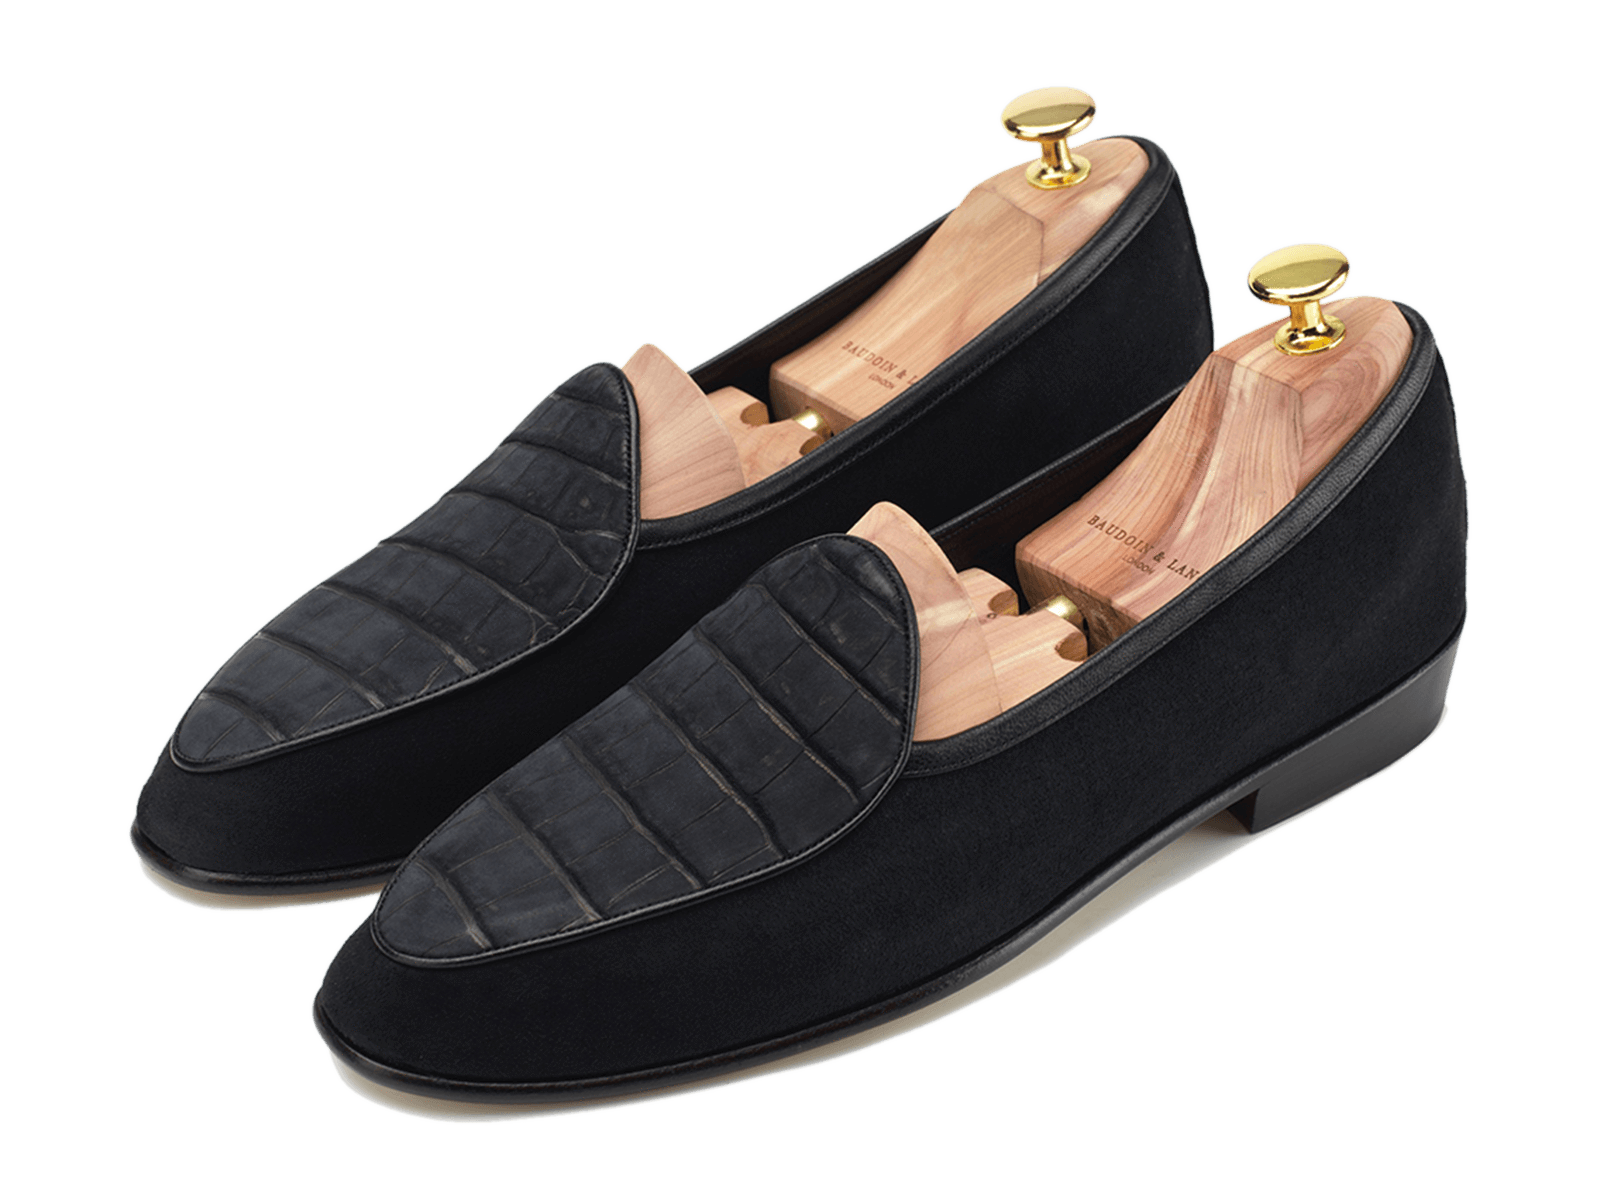 Sagan Classic Precious Leathers in Black Suede and Nubuck alligator